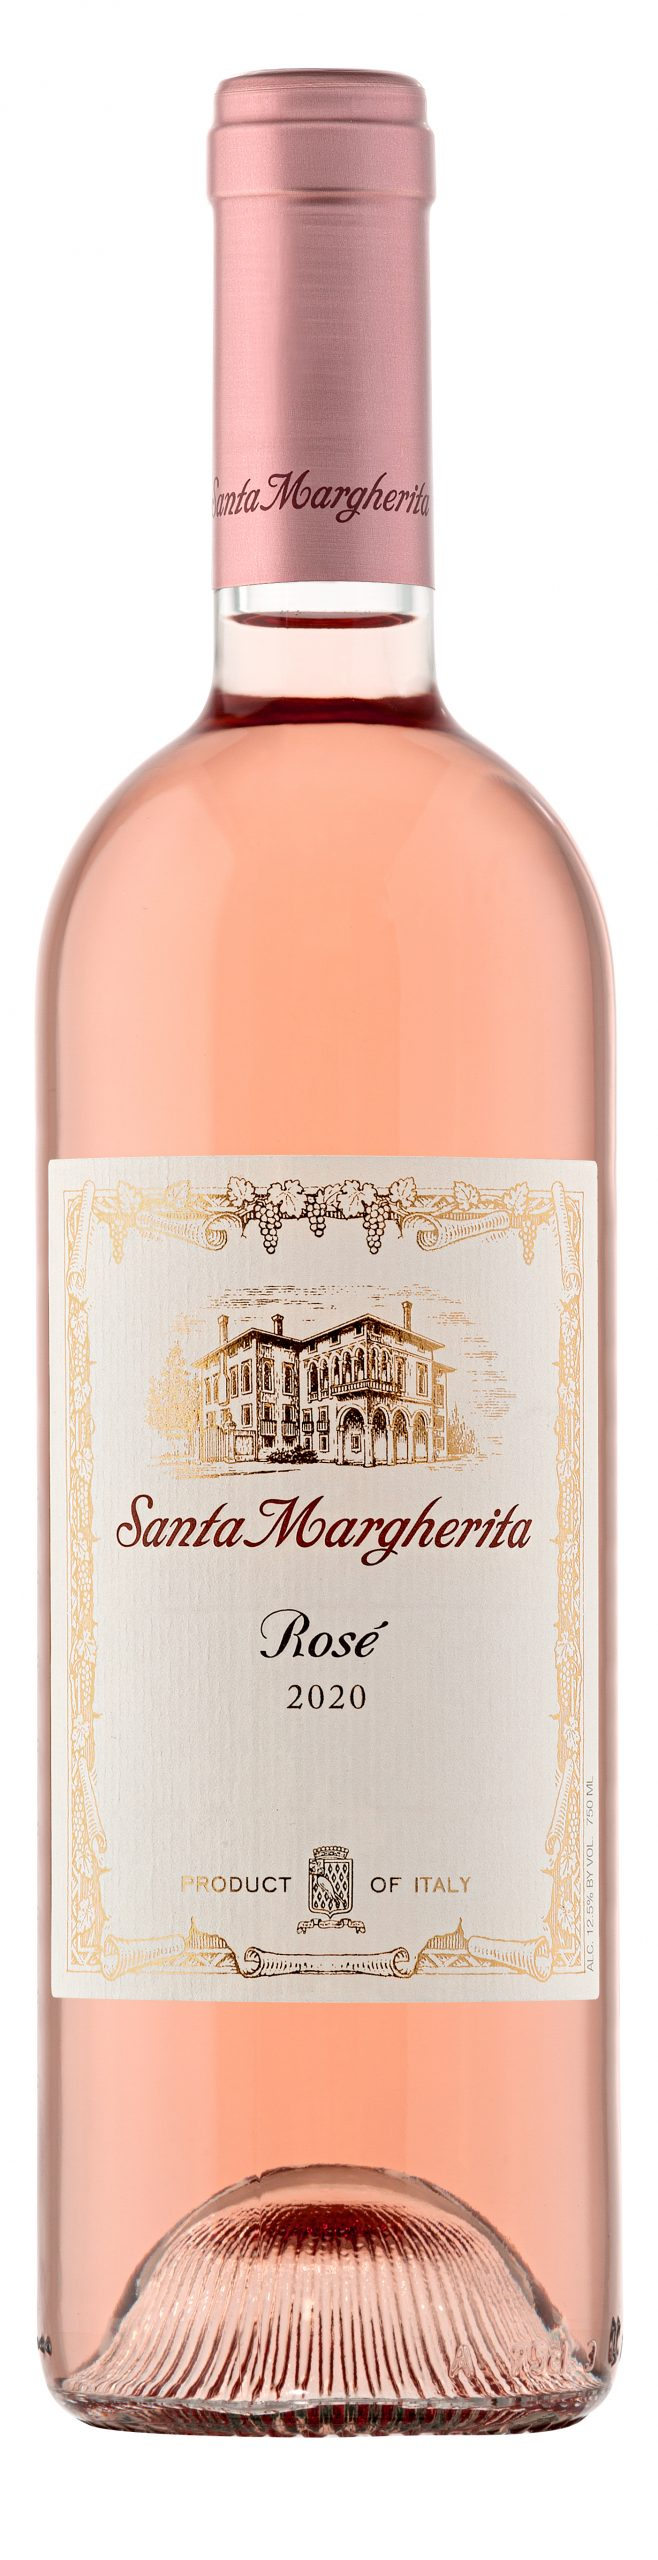 Santa Margherita introduces Rose 2020 in the United States